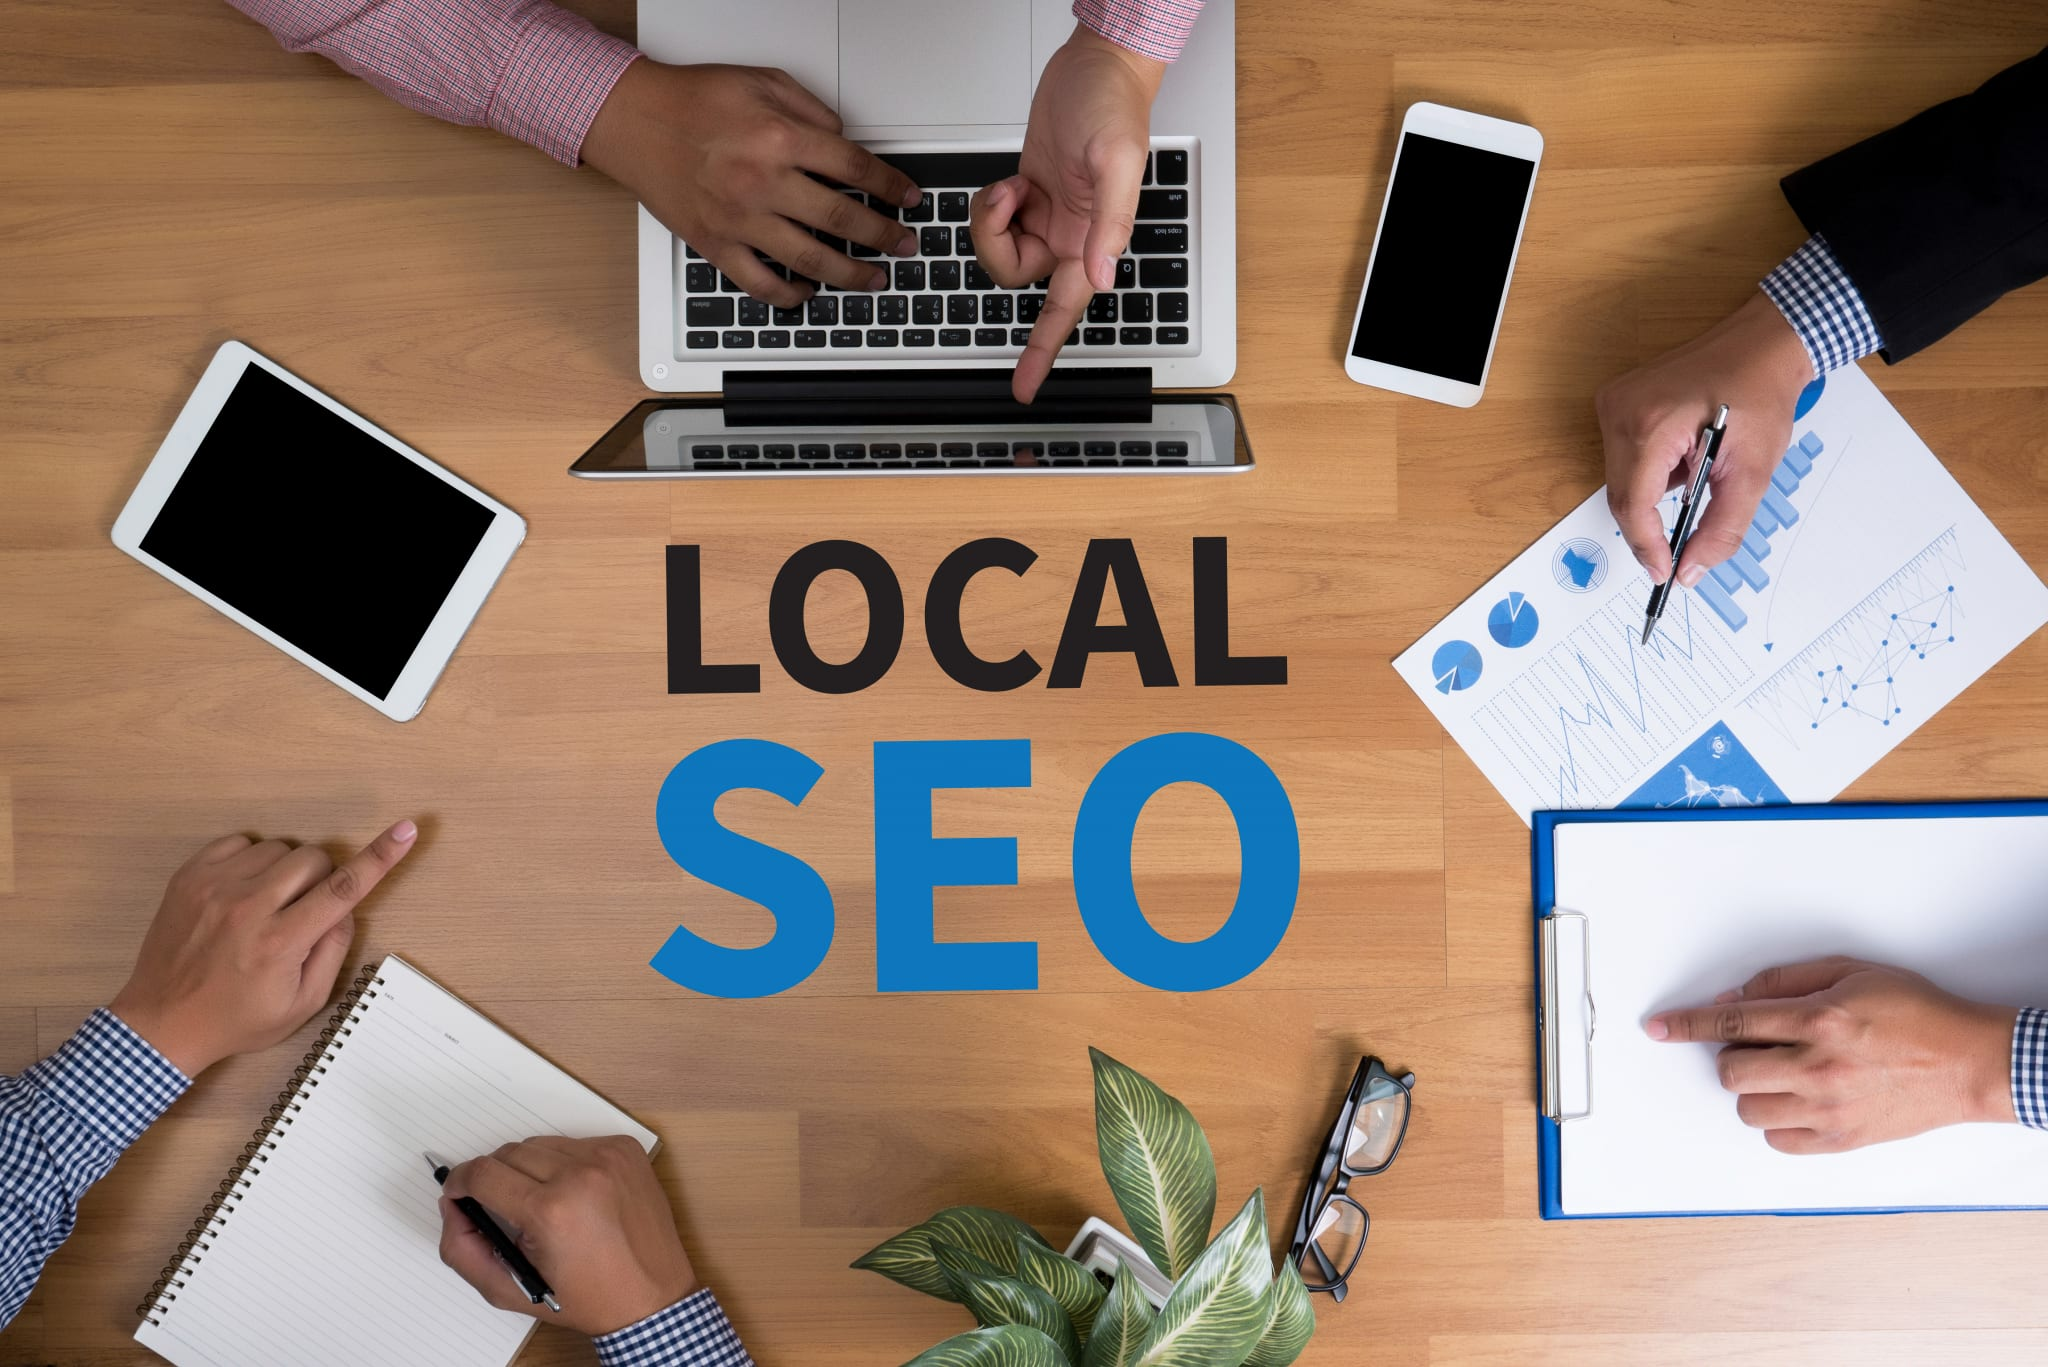 Our services include local SEO Onsite and Offsite Services are available